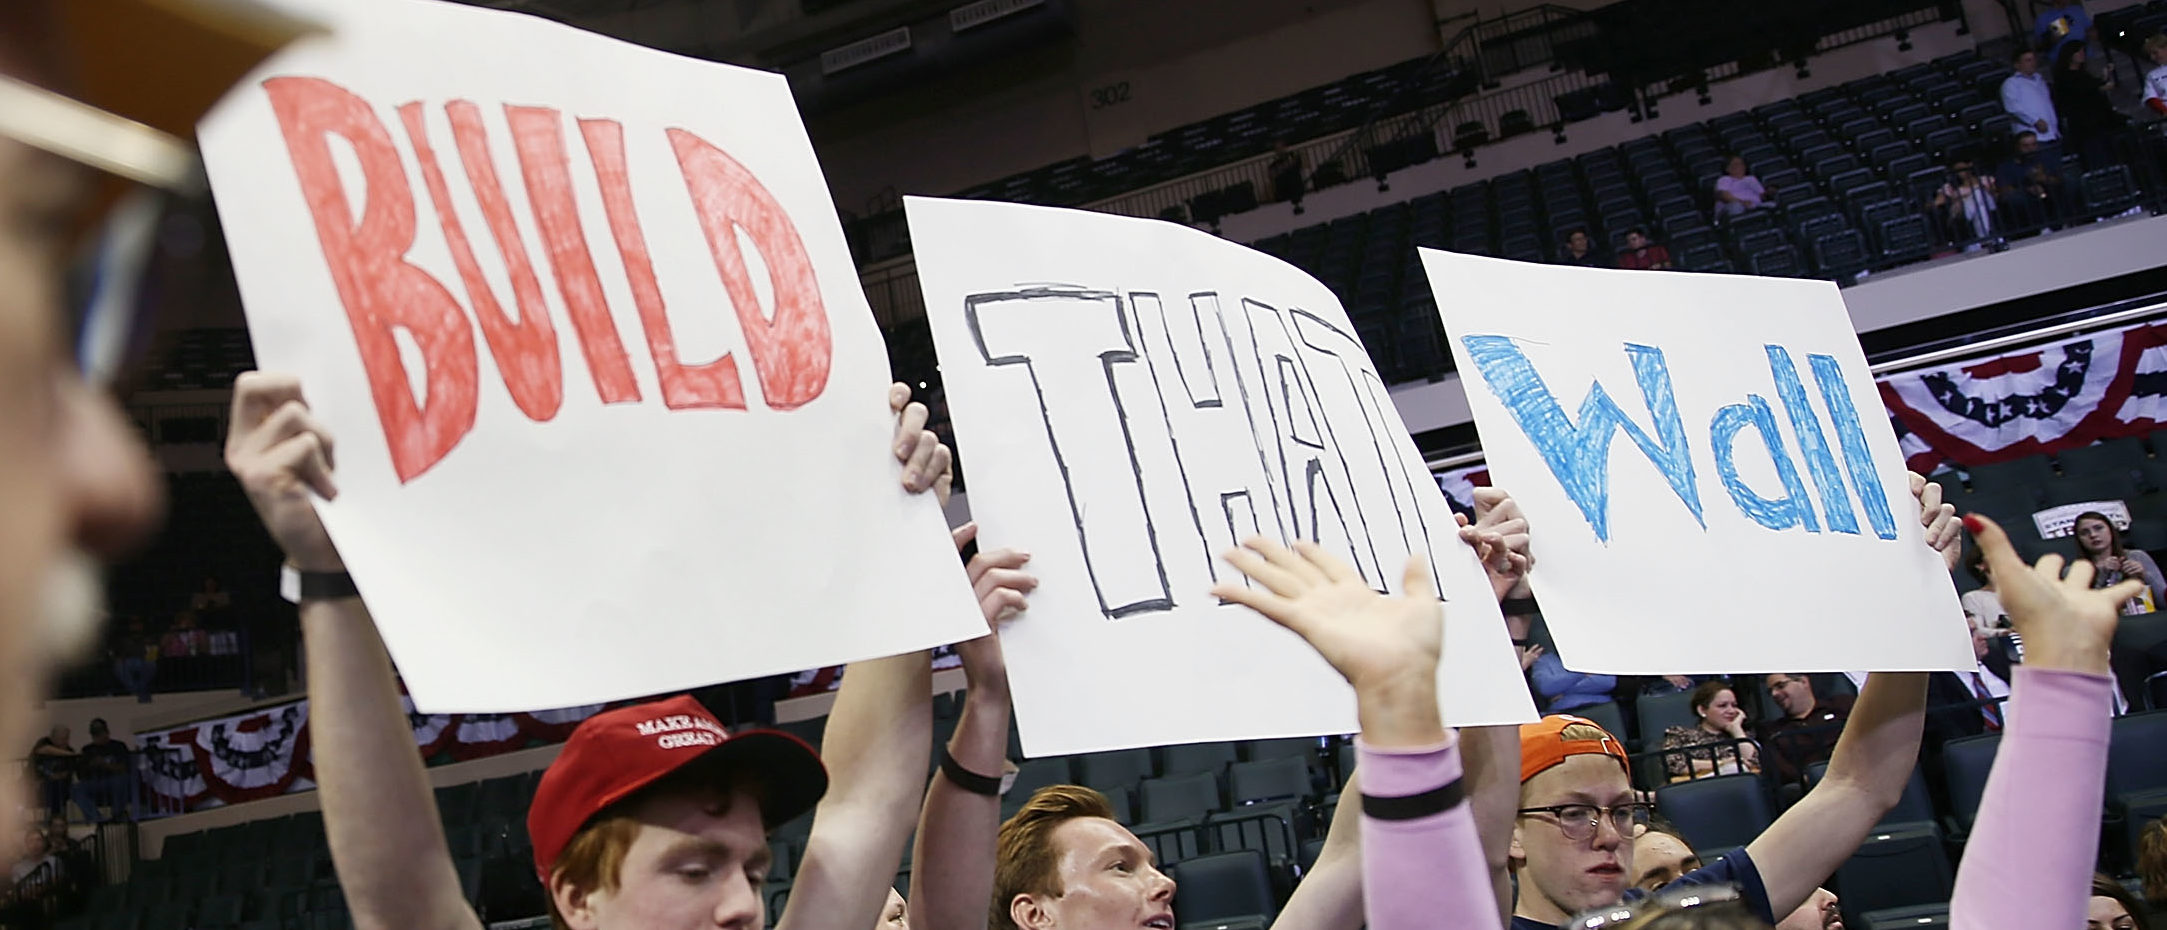 """TAMPA, FL - FEBRUARY 12: People hold signs that read, """" Build that Wall"""", as they wait for the start of a campaign rally for Republican presidential candidate Donald Trump at the University of South Florida Sun Dome on February 12, 2016 in Tampa, Florida. The process to select the next Democratic and Republican Presidential candidate continues. (Photo by Joe Raedle/Getty Images)"""